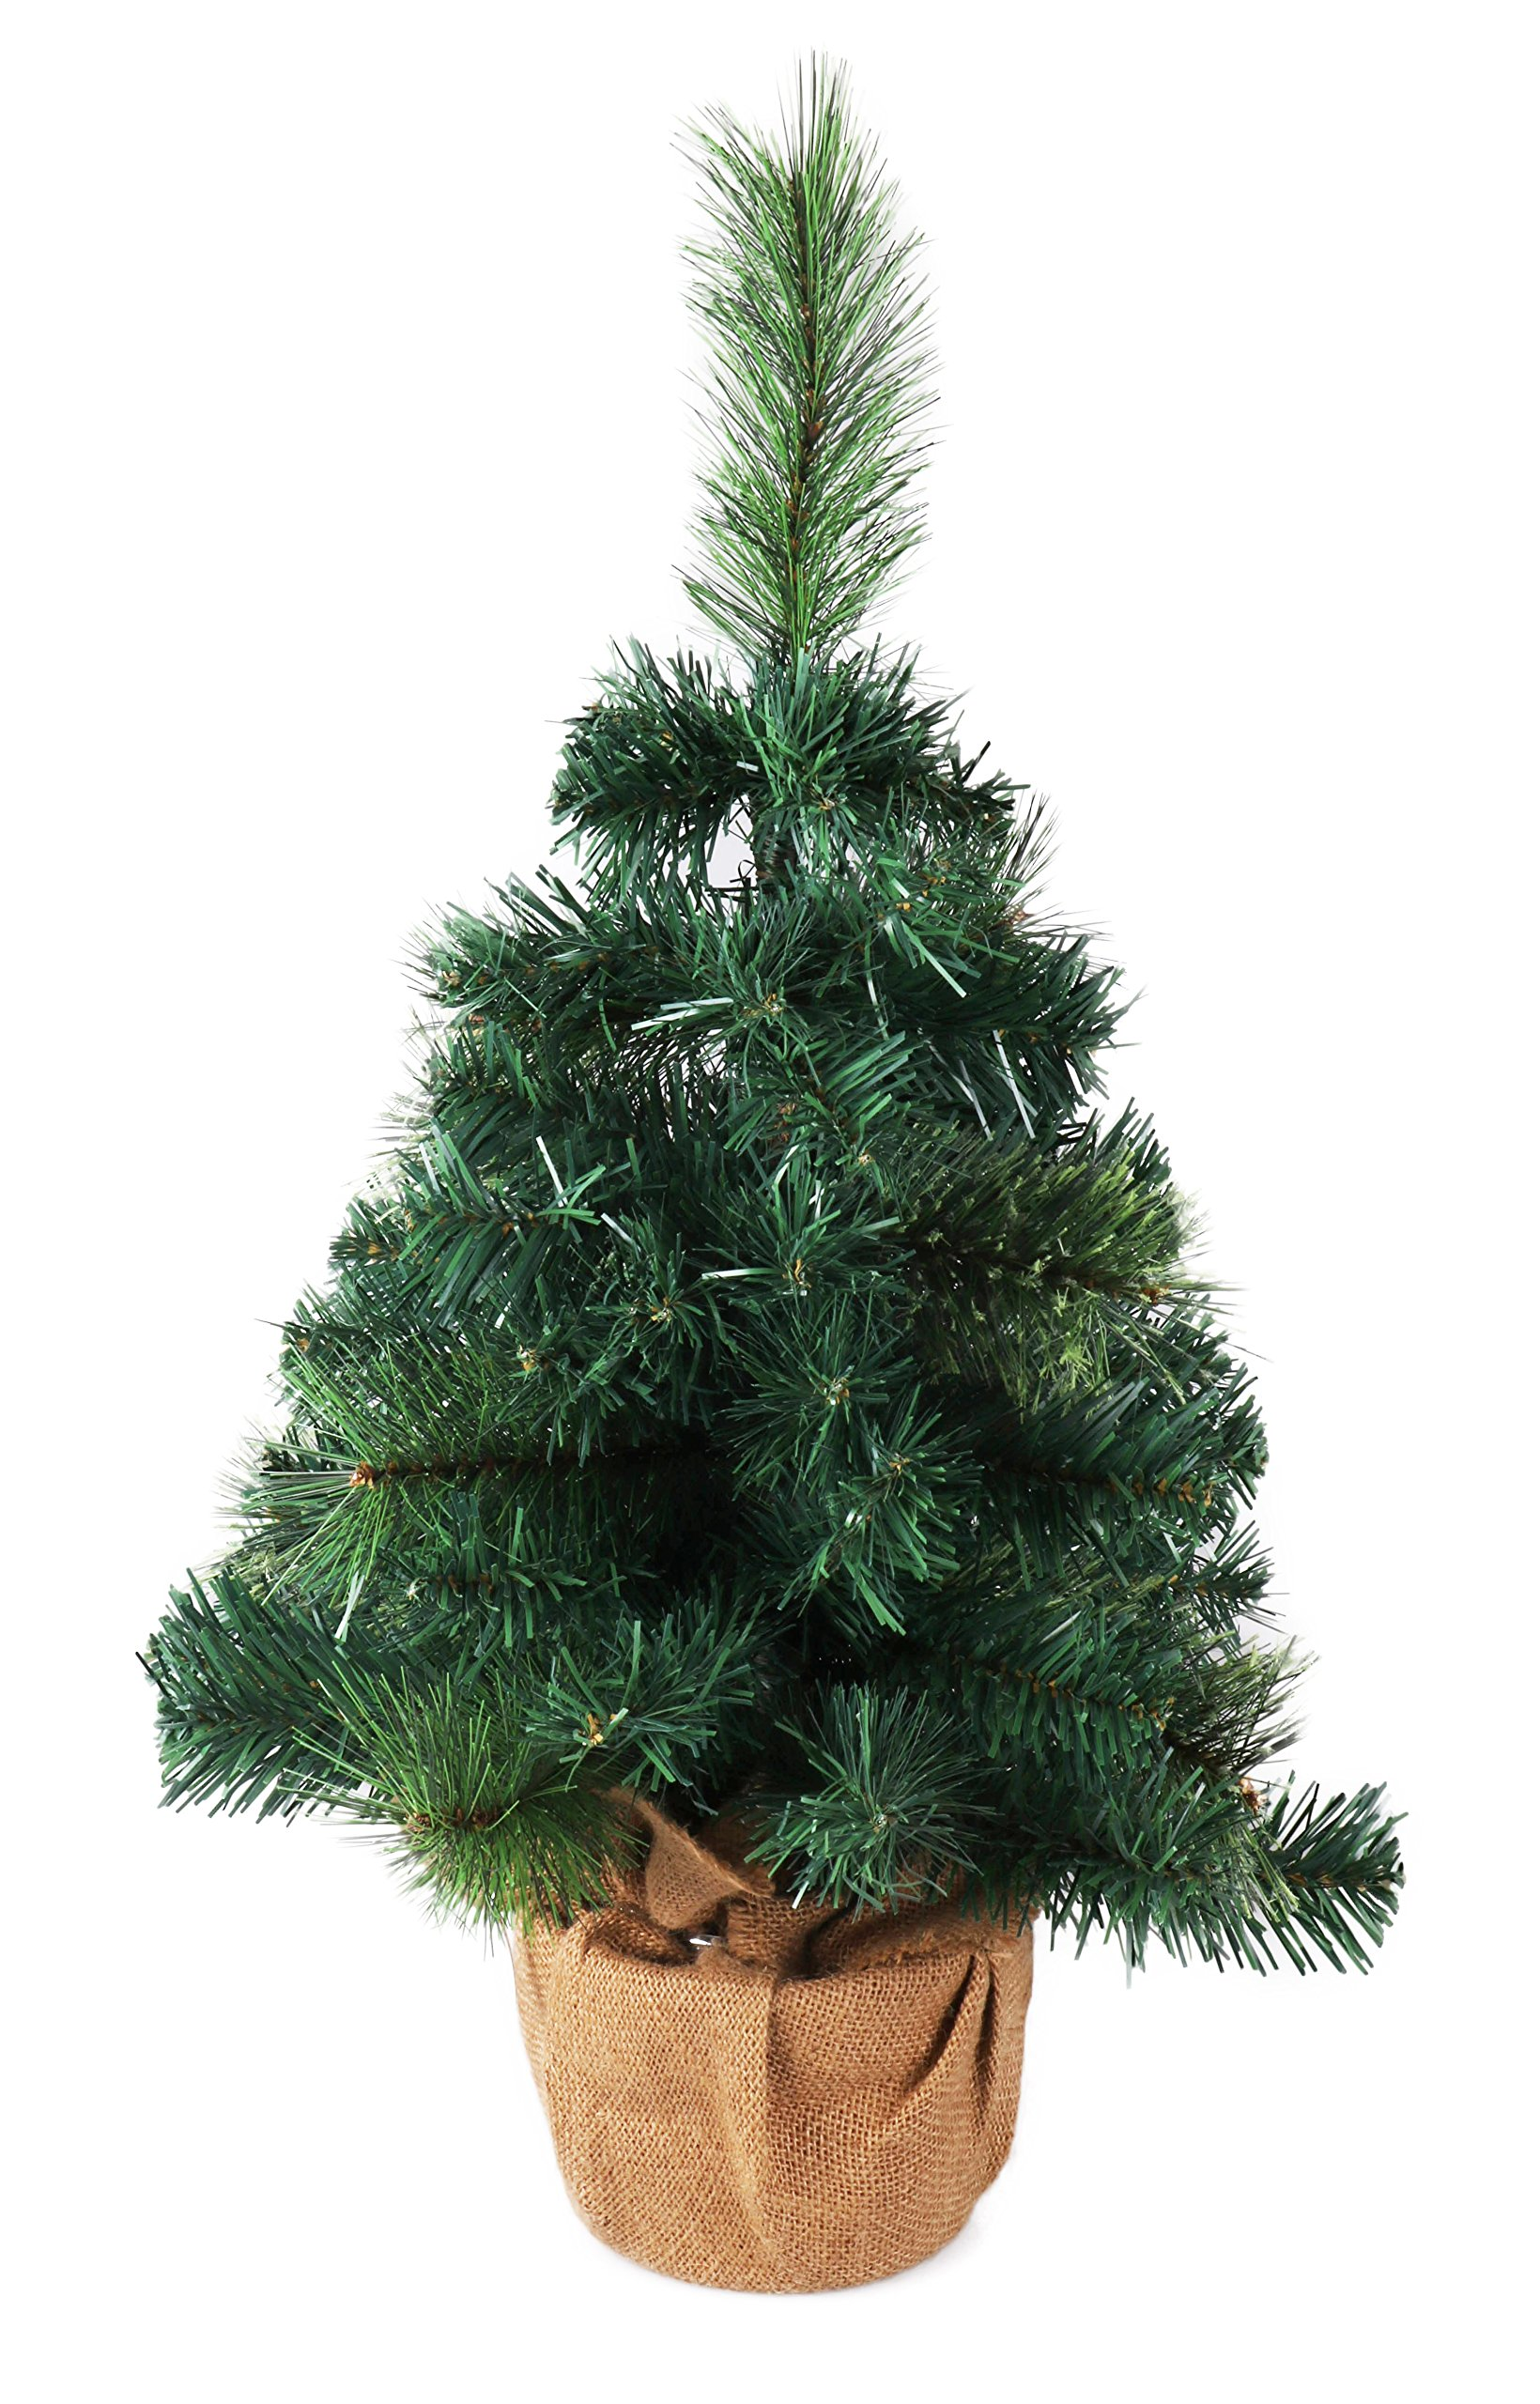 Mini Artificial Christmas Tree with Burlap Base by Clever Creations | Best Choice Christmas Decoration for Table and Desk Tops | Small 24'' Tall Christmas Pine Tree Perfect for Your Home or Office